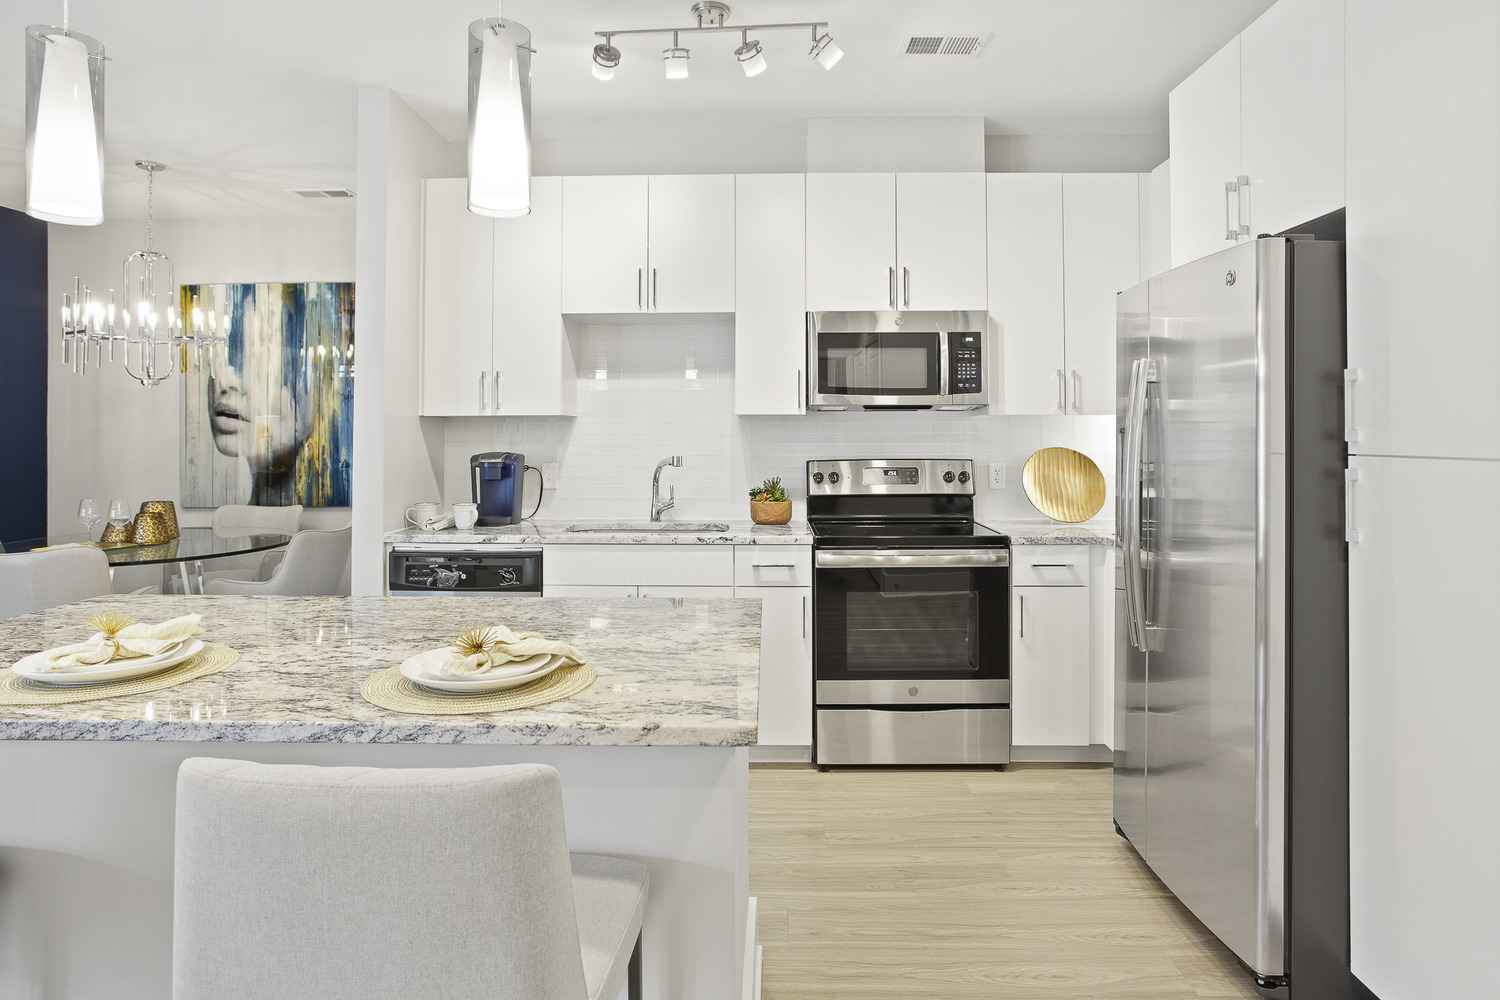 CBG builds Bell Shady Grove, a 315-Unit Mixed-Use Community with Amenities in Rockville, MD - Image #2